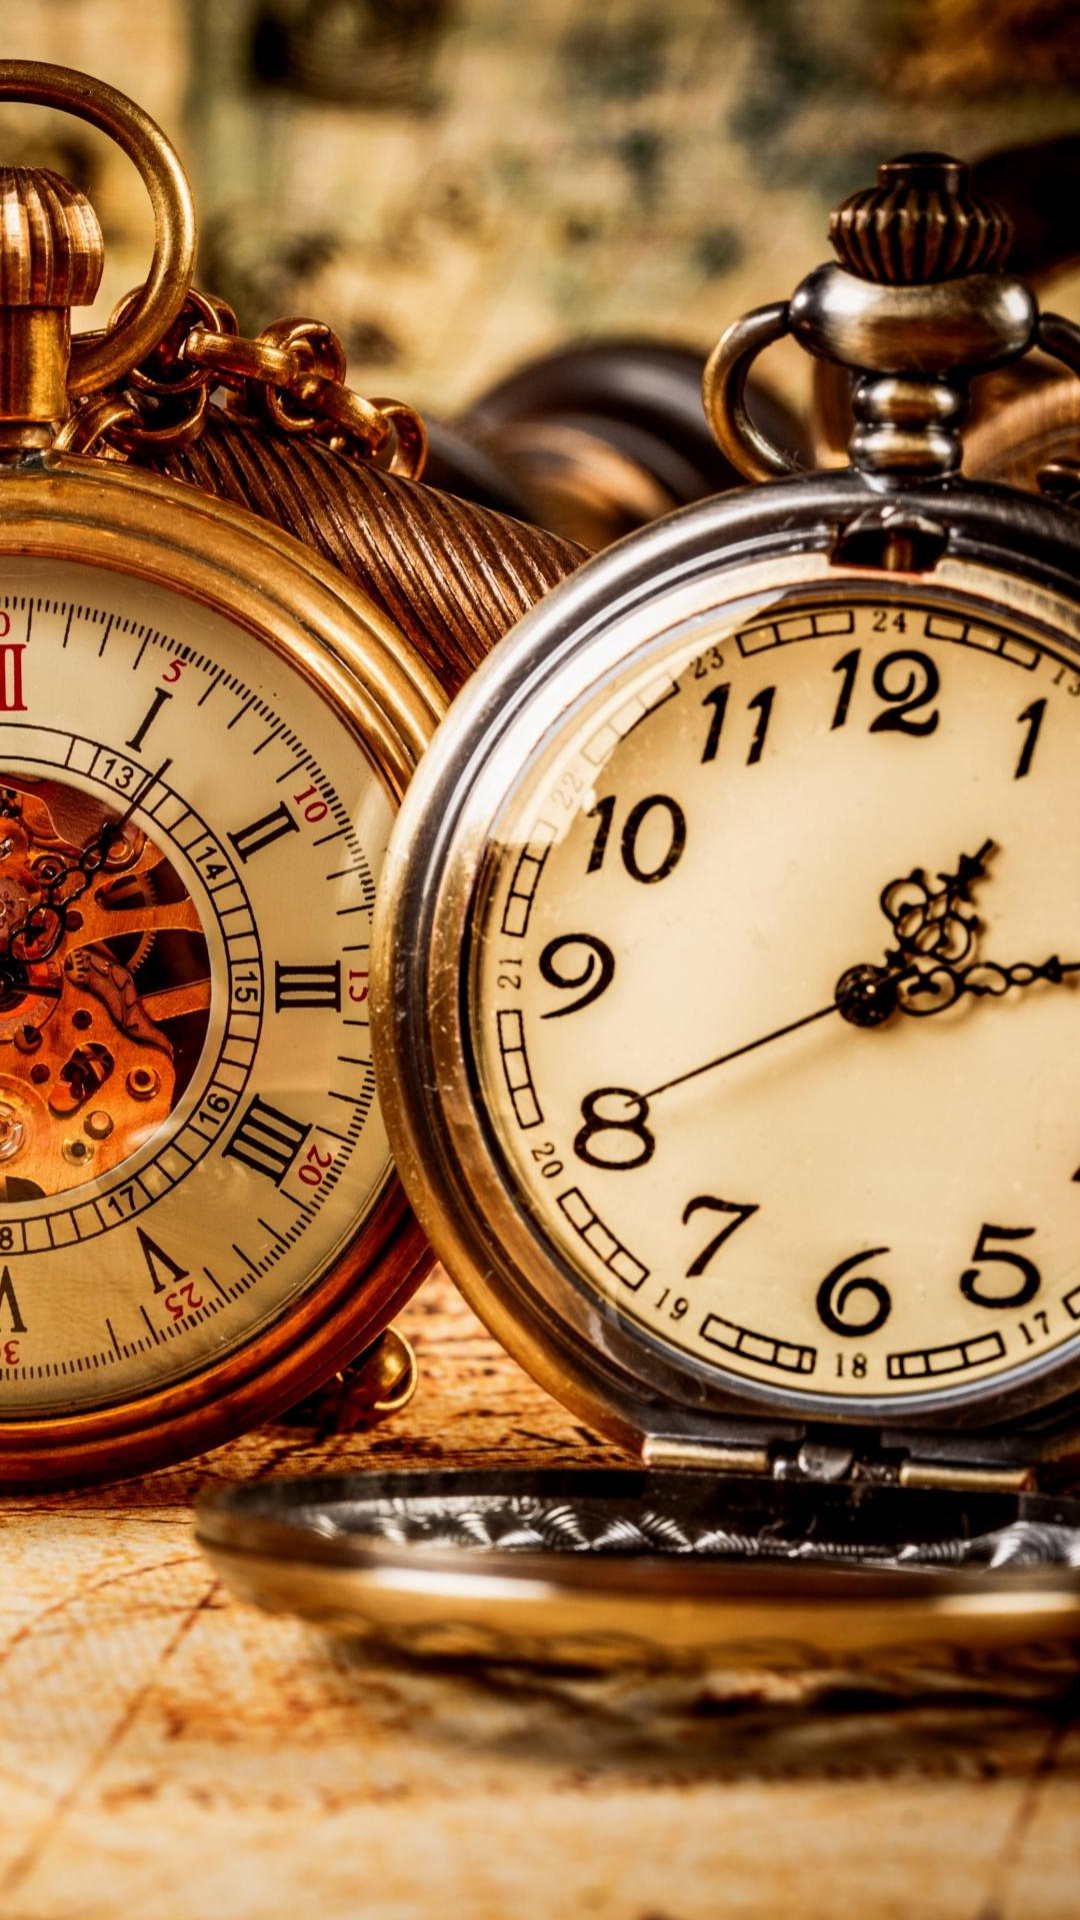 Old Time Pieces Clocks Samsung Galaxy S5 Wallpapers In 2019